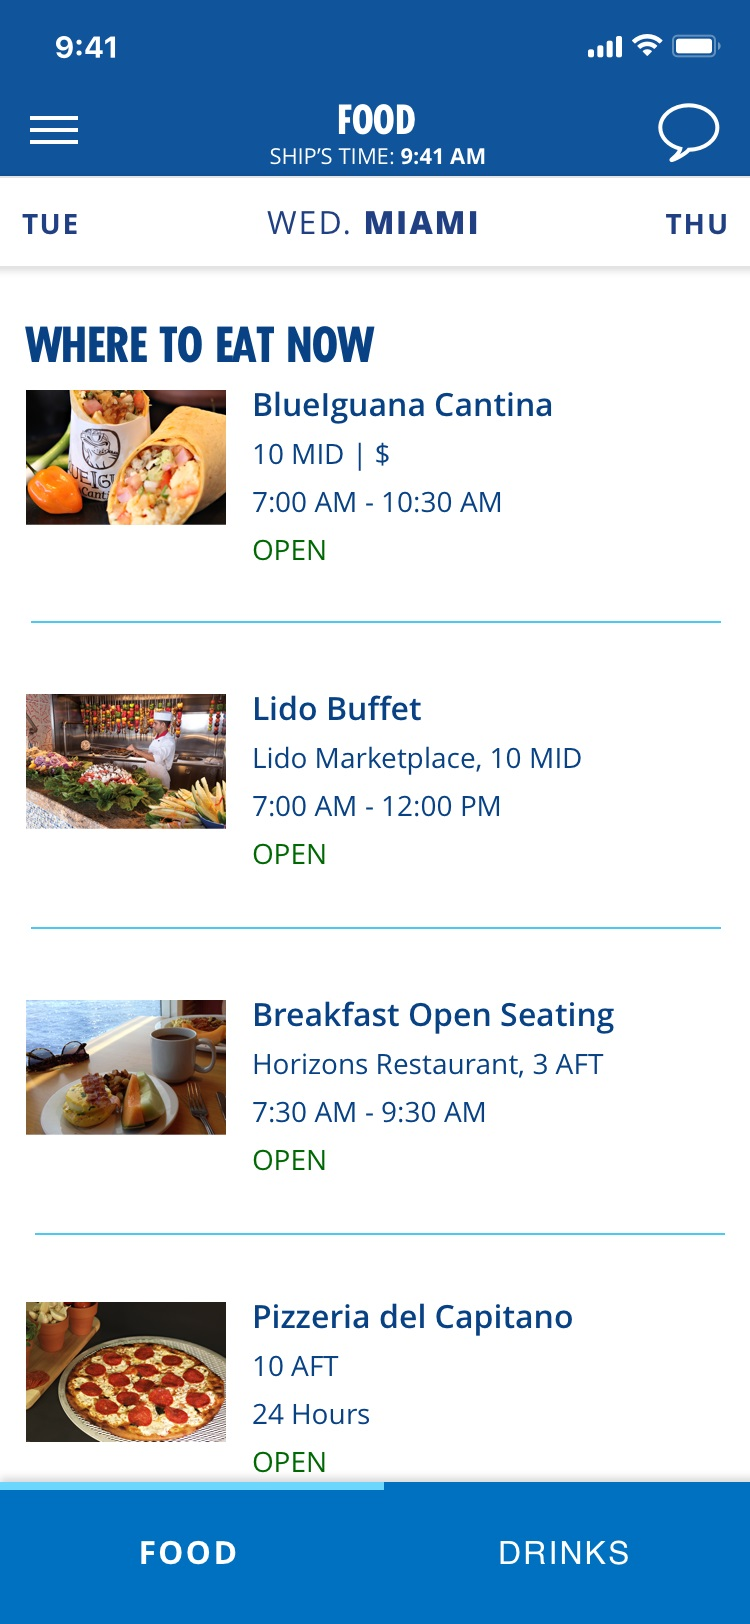 Carnival Cruise Line Expands Hub App With Pre-Cruise Purchasing Capabilities; 'Pizza Anywhere' Feature Rolled Out To Additional Ships